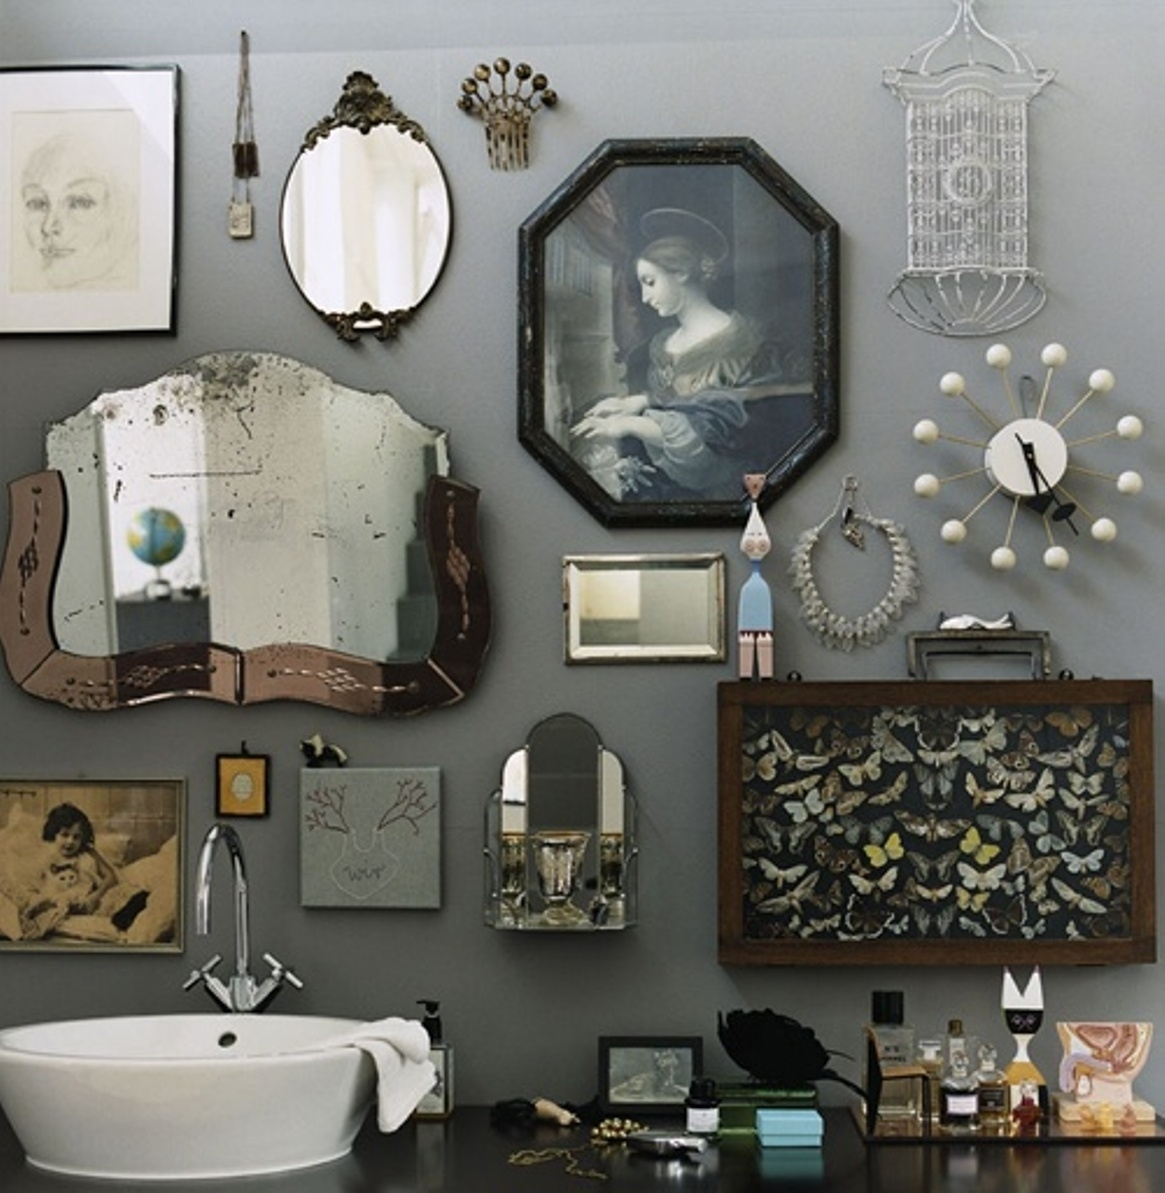 Charming Bathroom Wall Decor Inspirations — The Home Redesign With Best And Newest Wall Accents For Bathroom (Gallery 3 of 15)